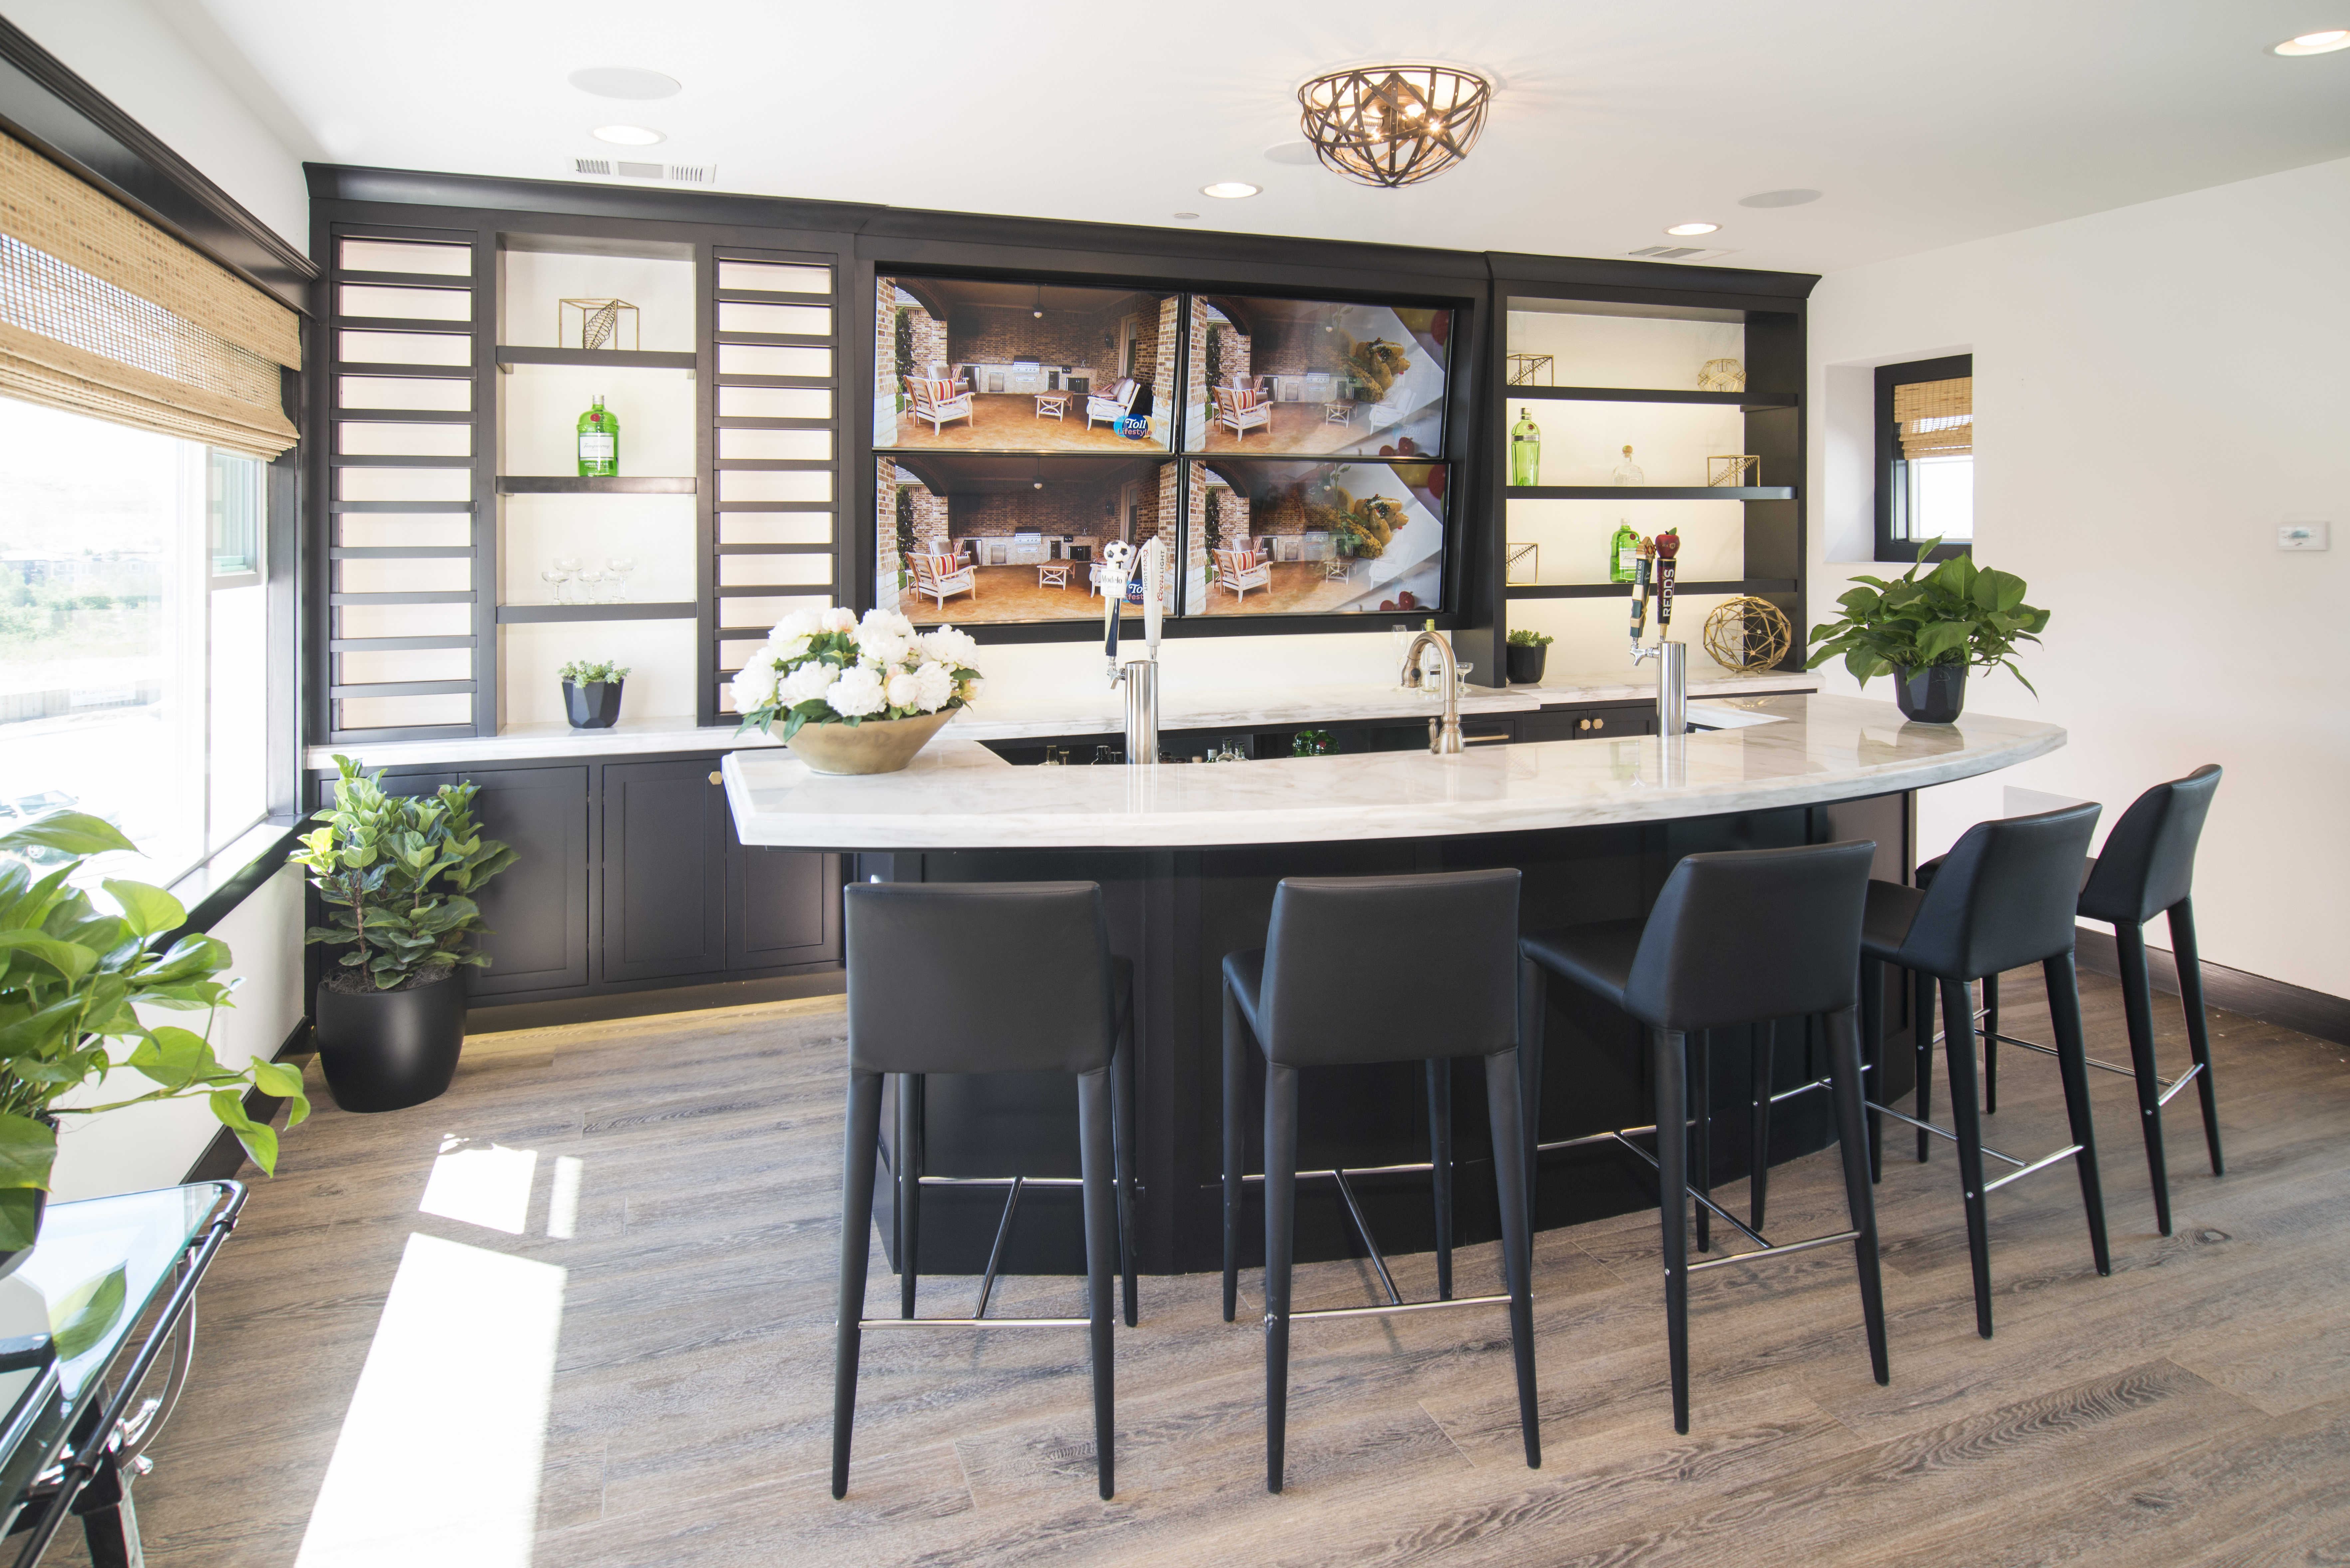 Beautiful Black Bar Room Cabinets With Open Shelves, Back Lighting And  White Mixed Counter Tops